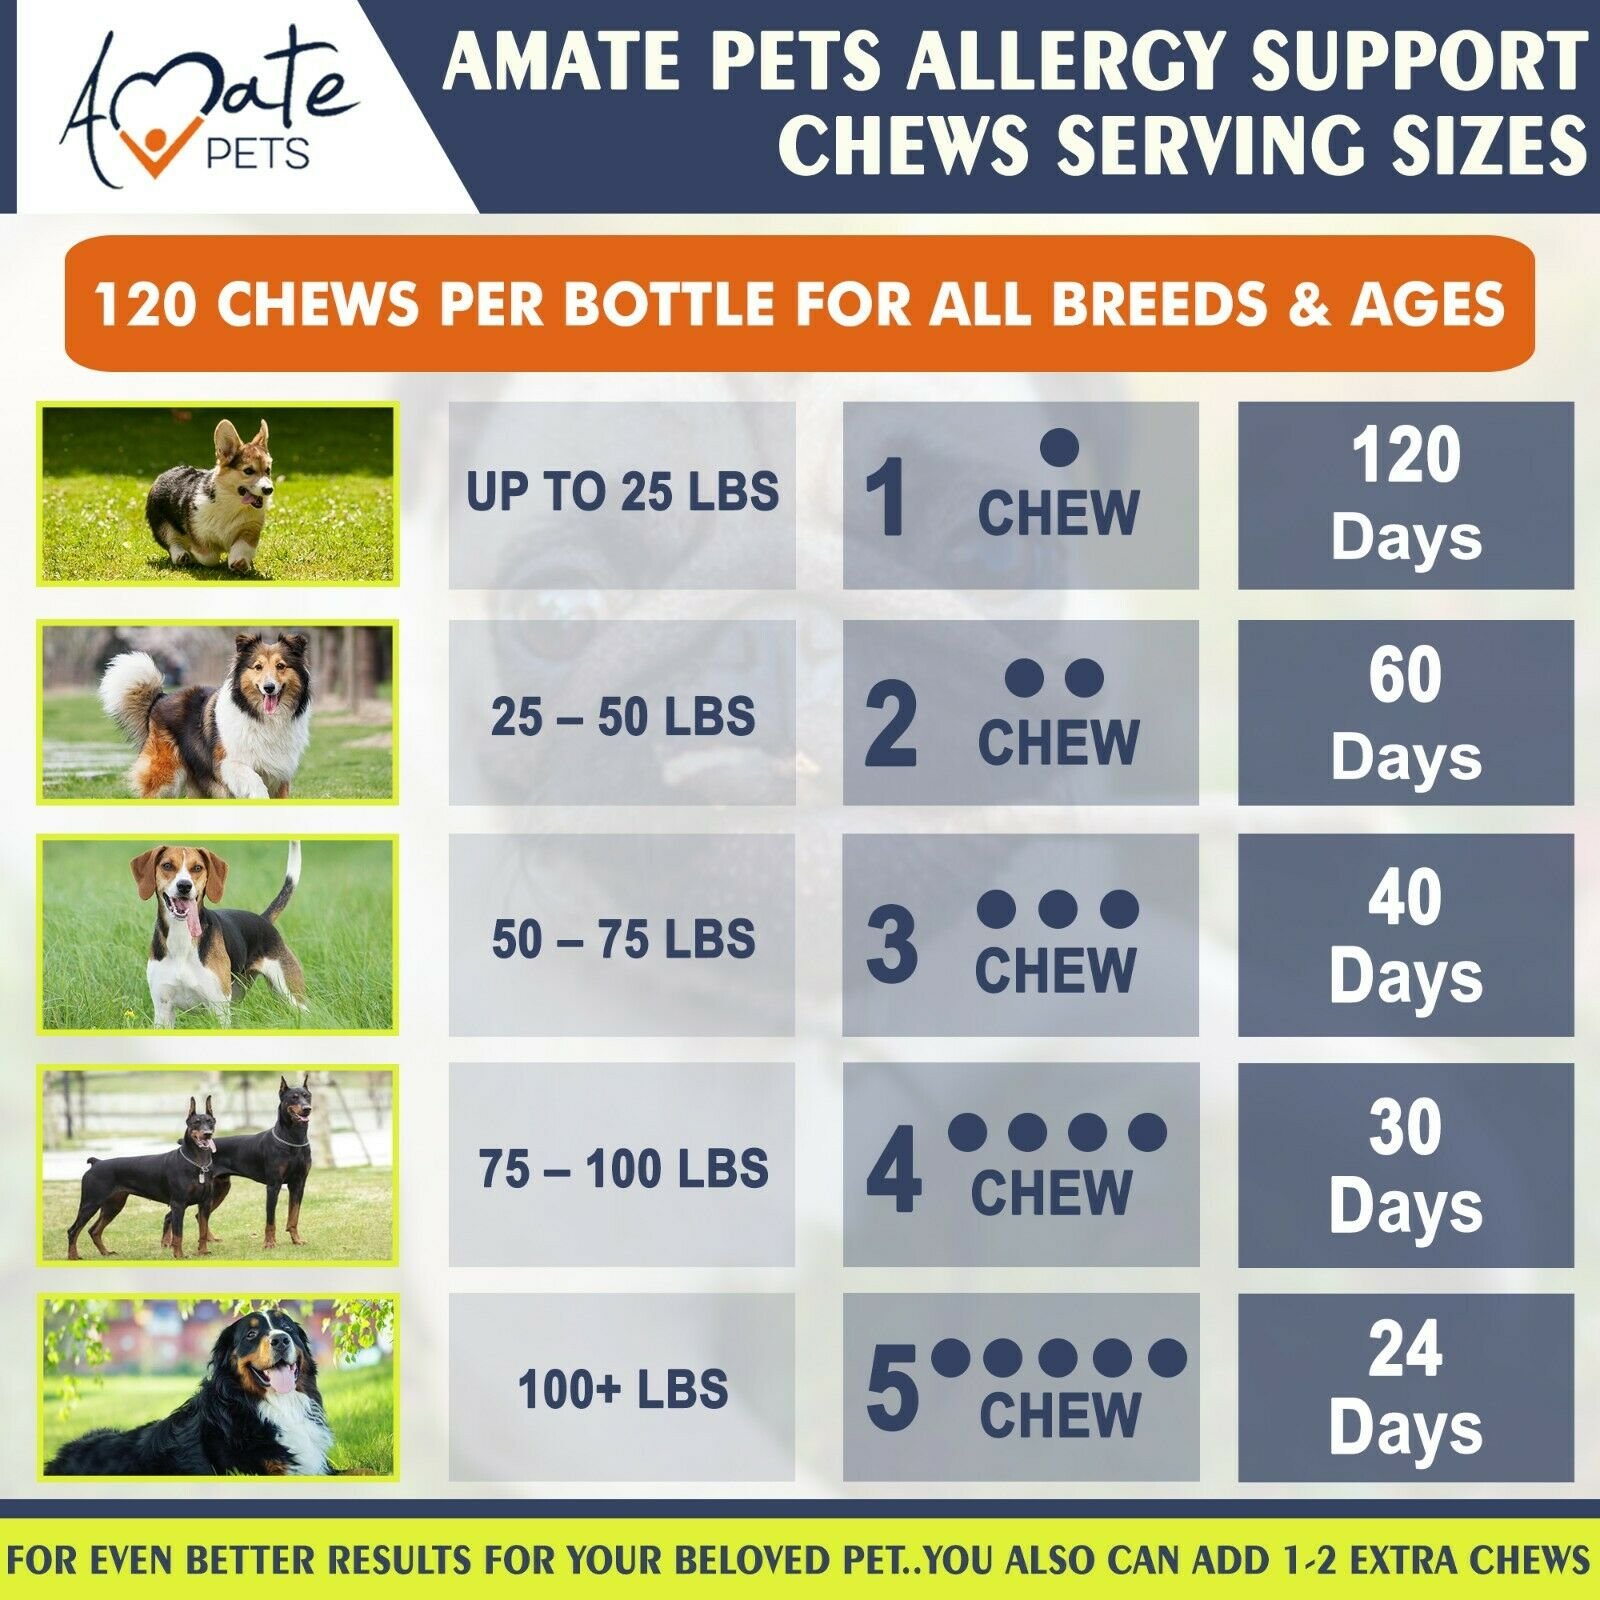 Allergy Relief Immune Supplement for Dogs - Itching Skin Relief Amate Pets 3